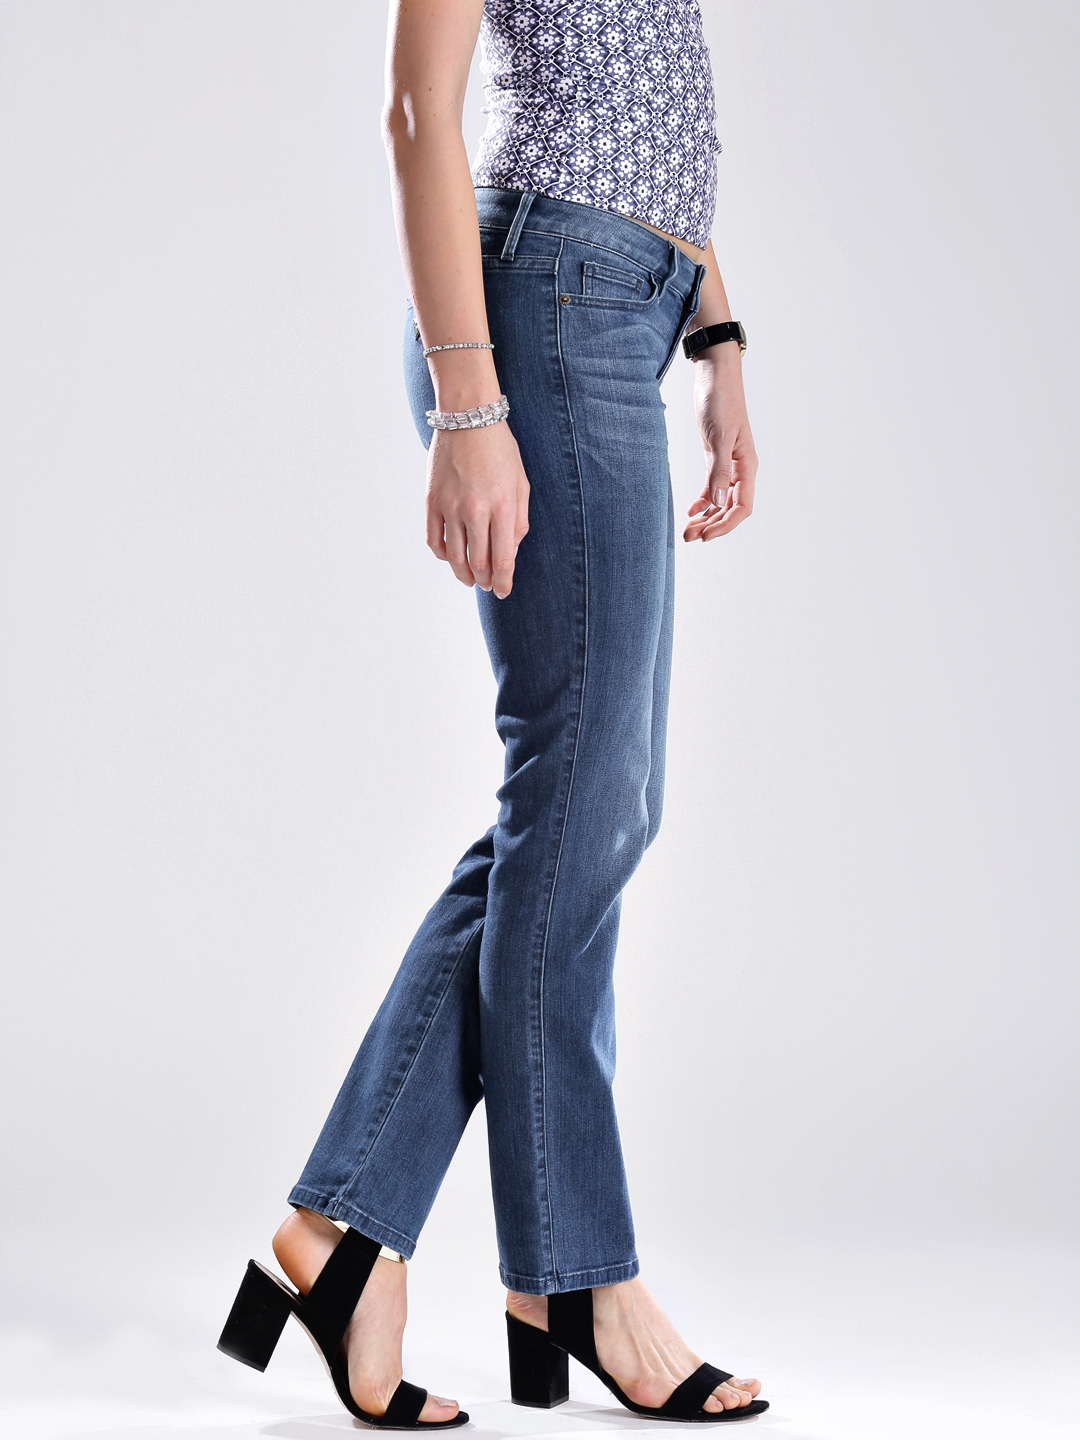 b49752169 Buy GUESS Blue Slim Fit Stretchable Jeans - Jeans for Women 886179 ...